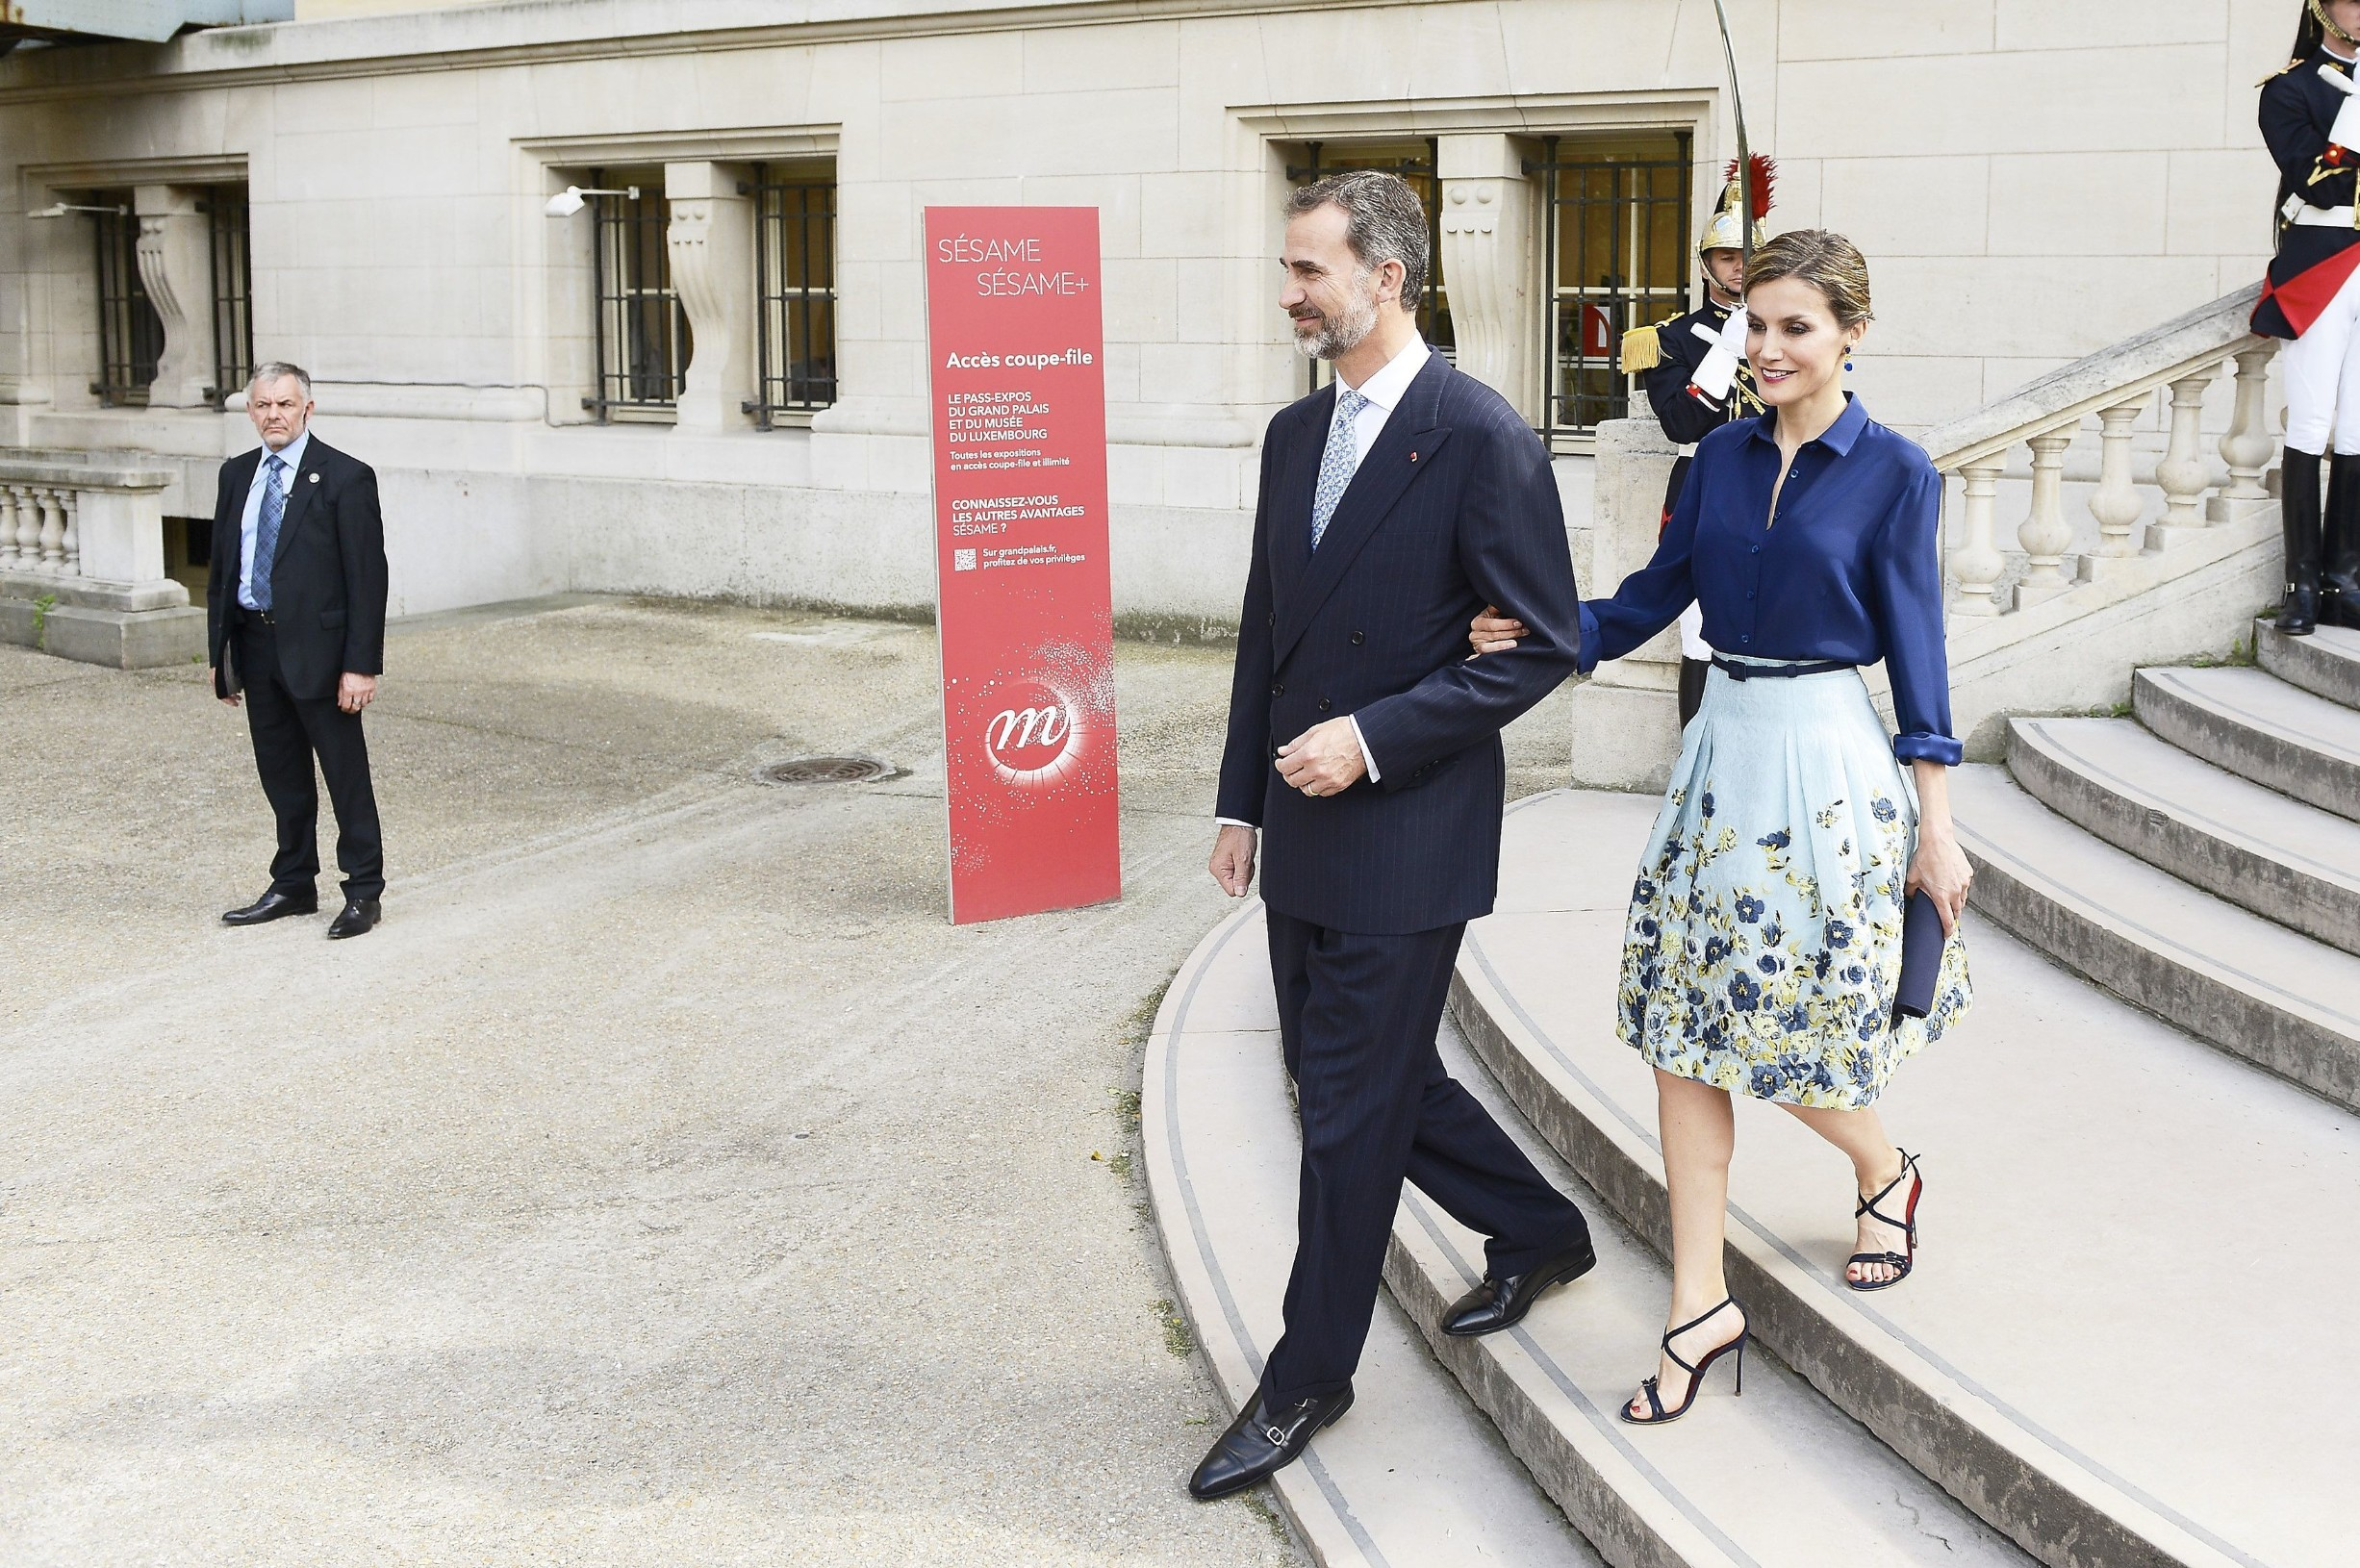 (4818160ax) King Felipe VI, Francois Hollande and Queen Letizia King Felipe VI and Queen Letizia visit to Paris, France - 02 Jun 2015, Image: 247369861, License: Rights-managed, Restrictions: , Model Release: no, Credit line: Profimedia, Shutterstock Editorial